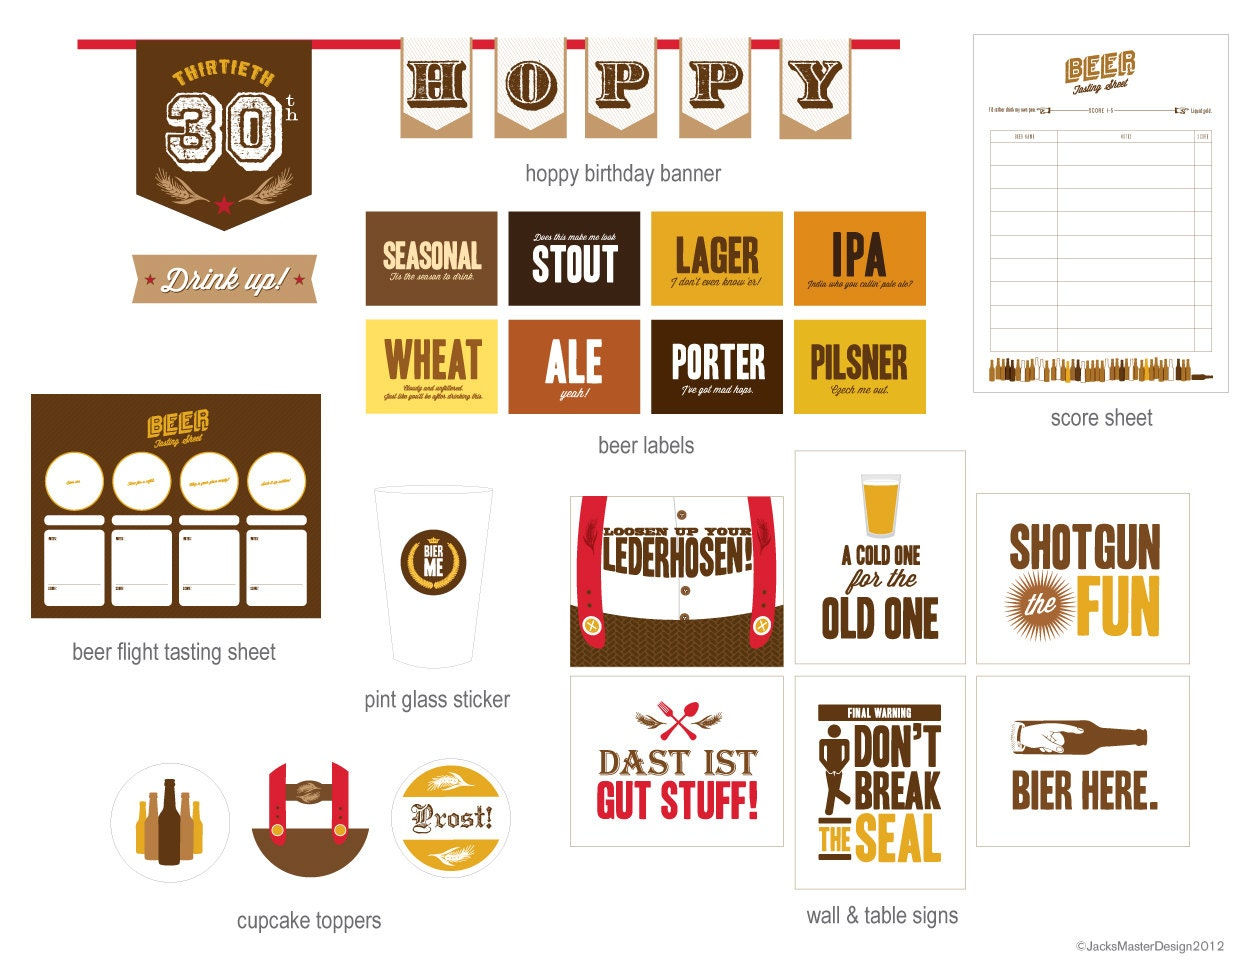 These printables are free for your personal use for your own backyard beer tasting party. These printables consist of food label cards that can be filled out on your computer then printed or you can print and hand write the food items, with four printed to one page and I recommend you print them on card stock or thicker paper.